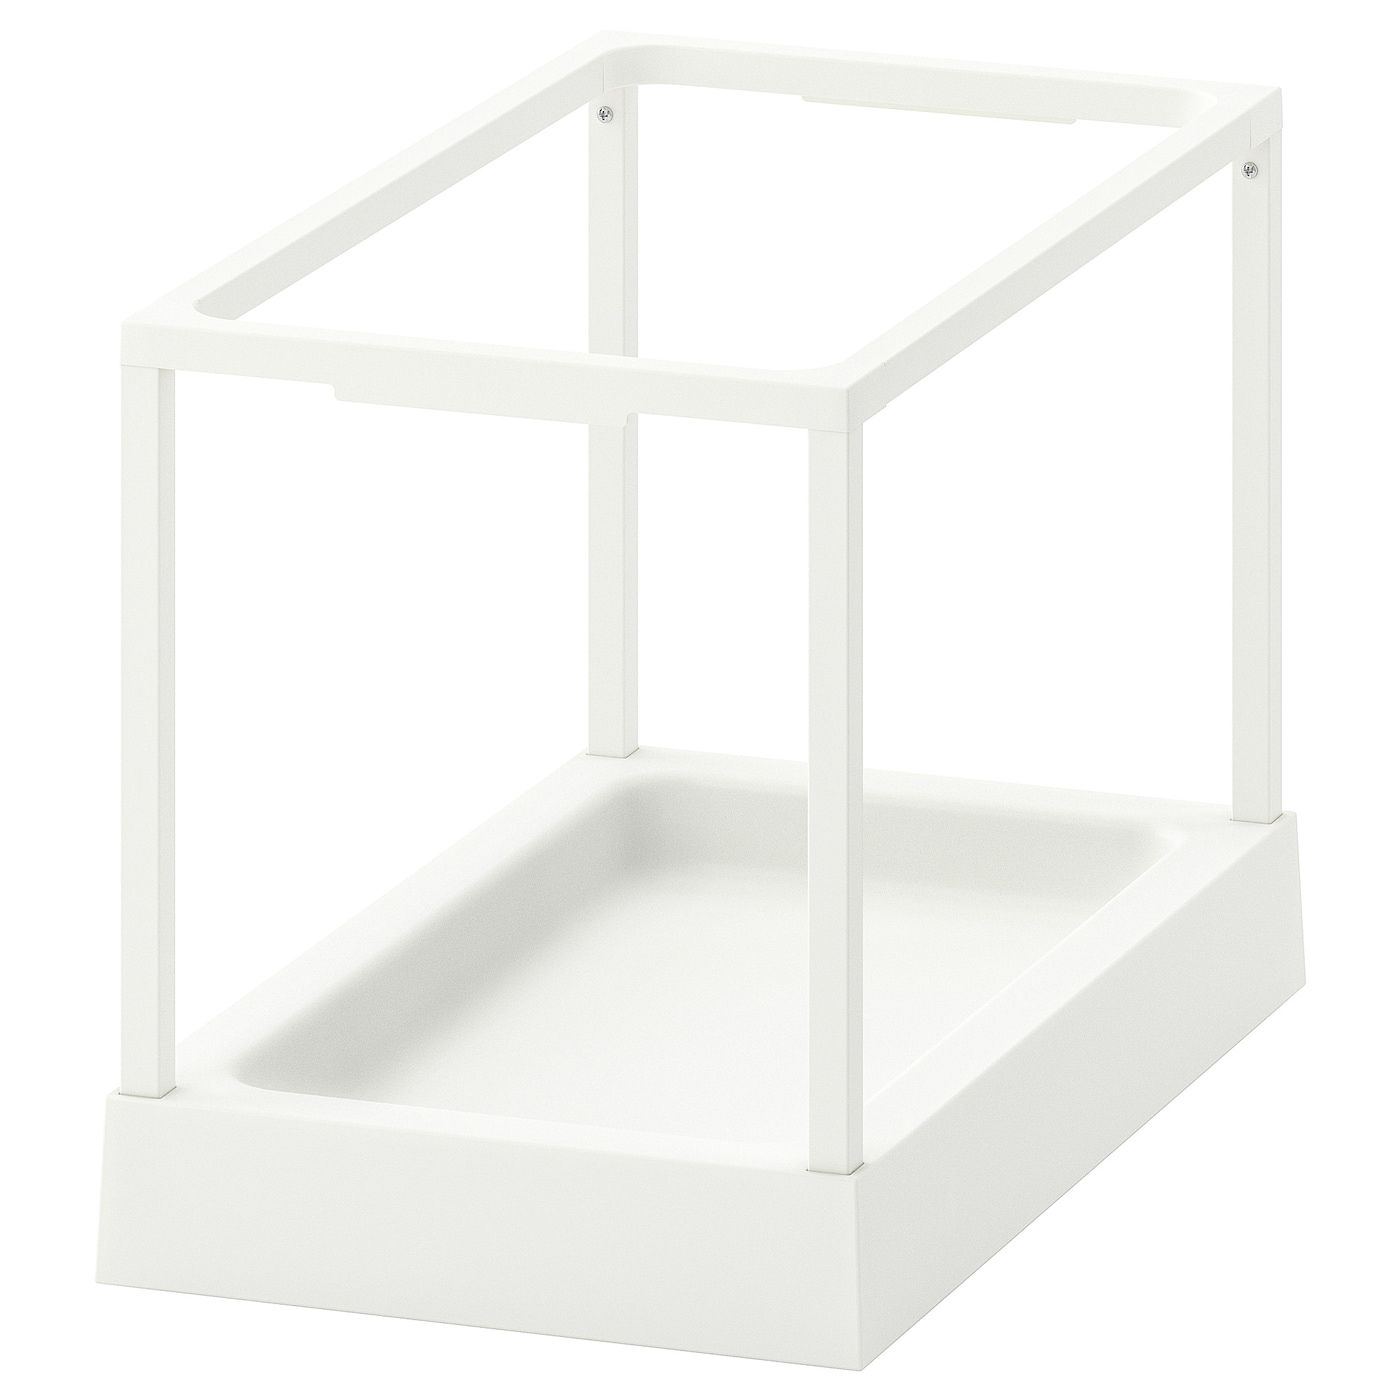 Ikea Utrusta Plateau Coulissant Pour Recyclage Ikea Country Bedroom Furniture Ergonomics Furniture